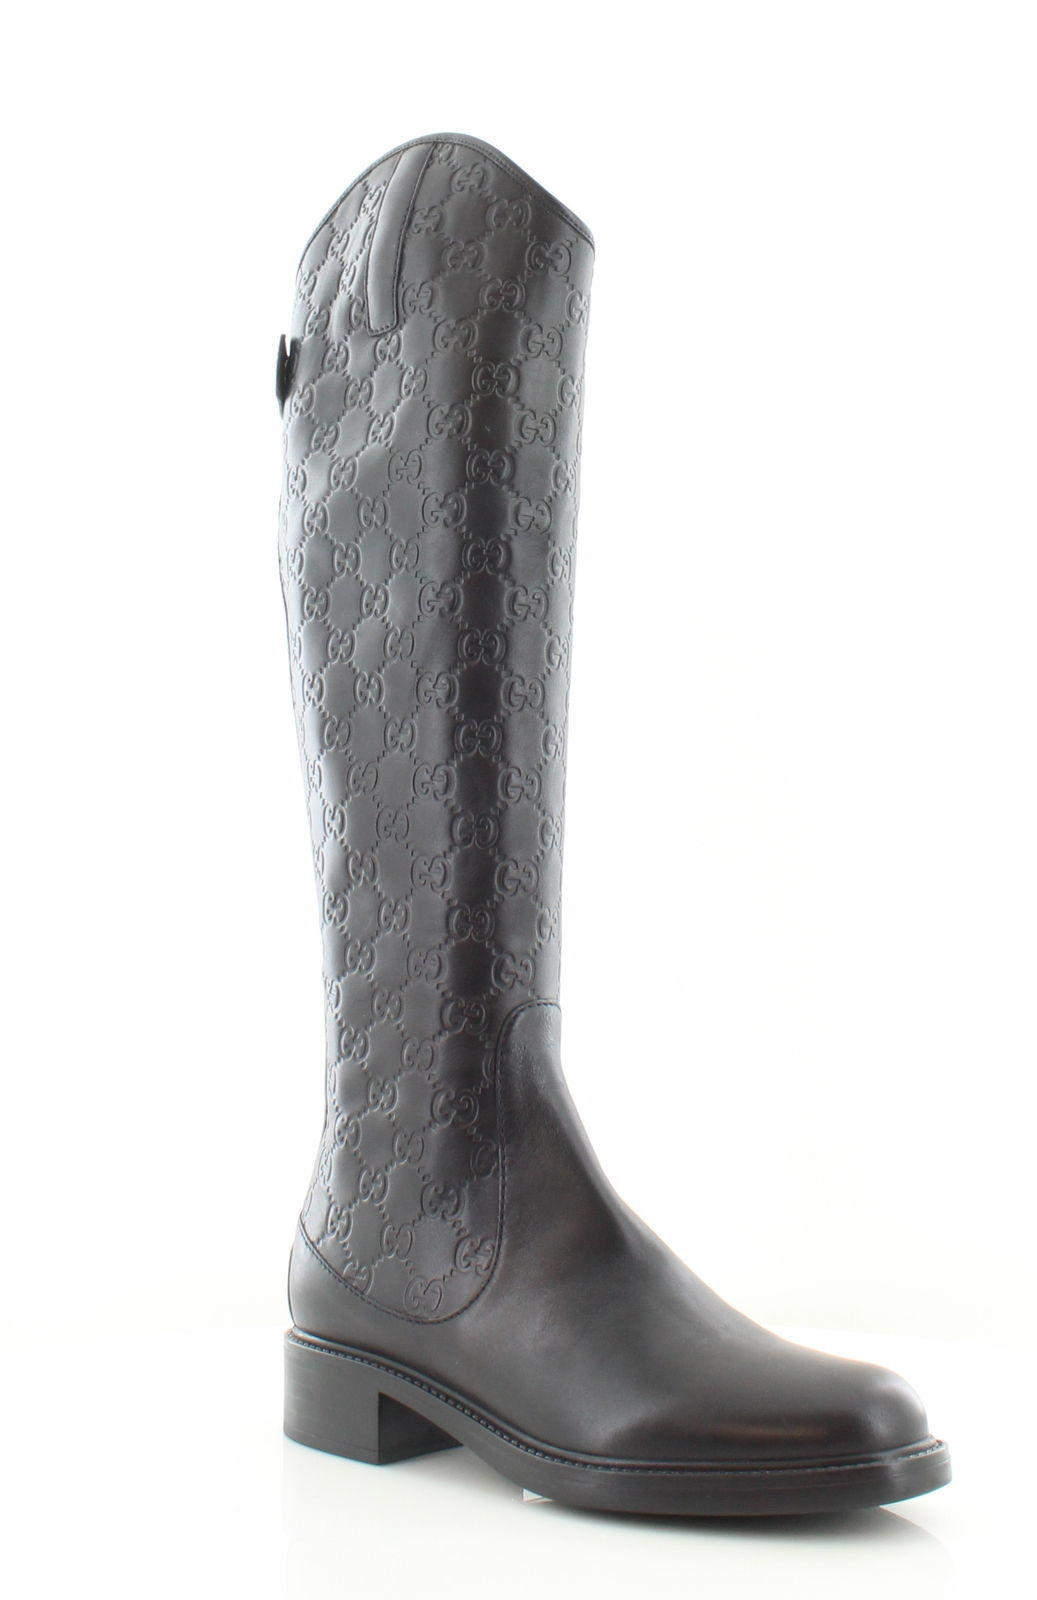 9e0754b3ac2 Gucci Maud Boot Women's Boots Black Size and 50 similar items